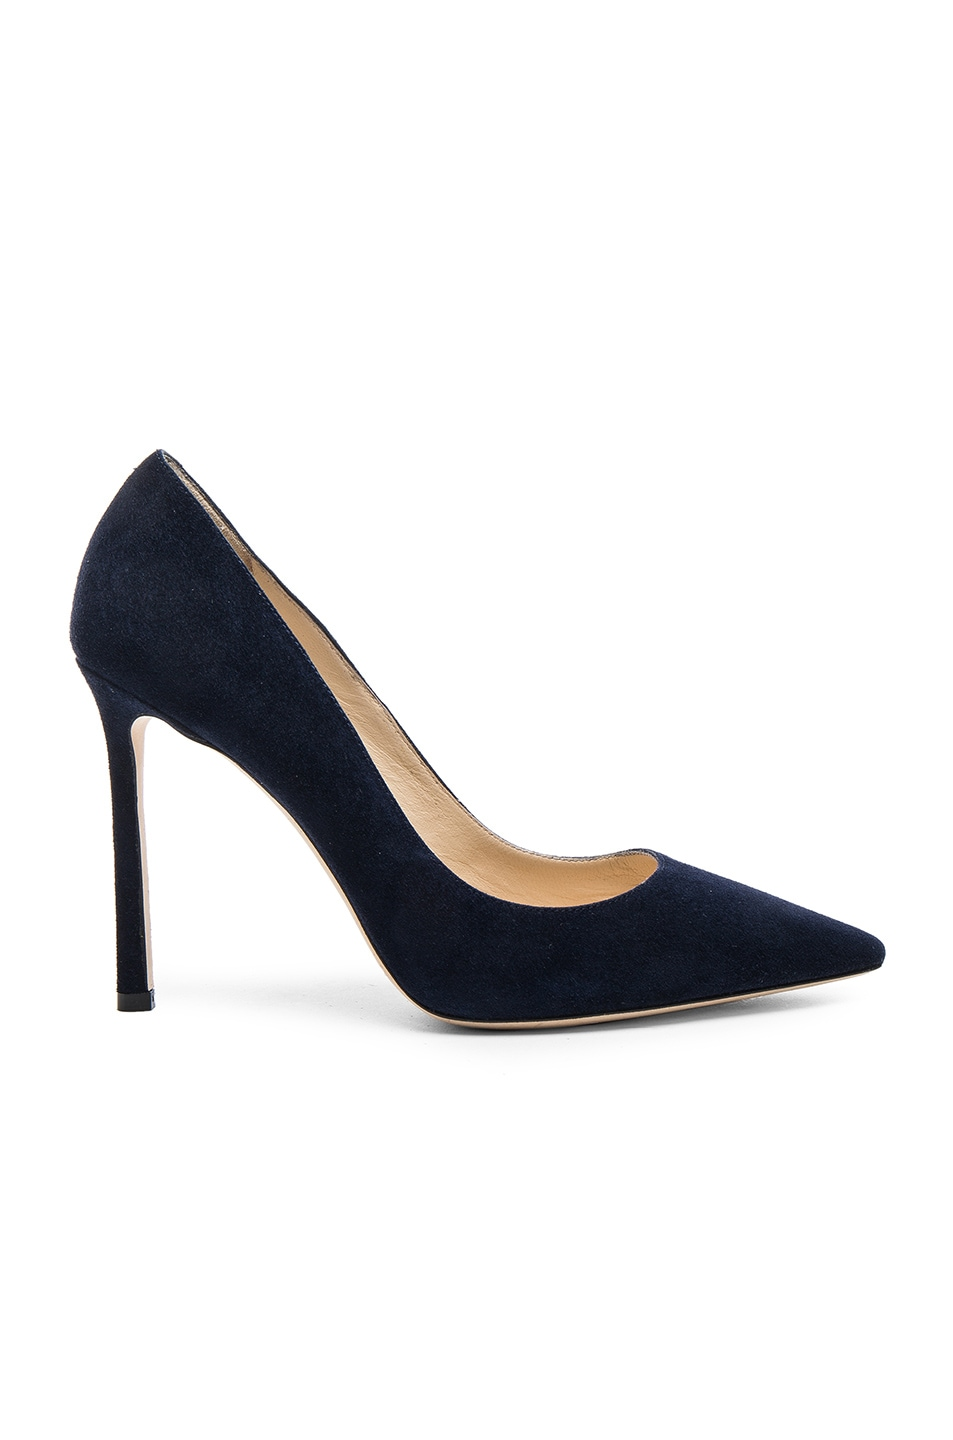 Image 1 of Jimmy Choo Suede Romy Pumps in Navy